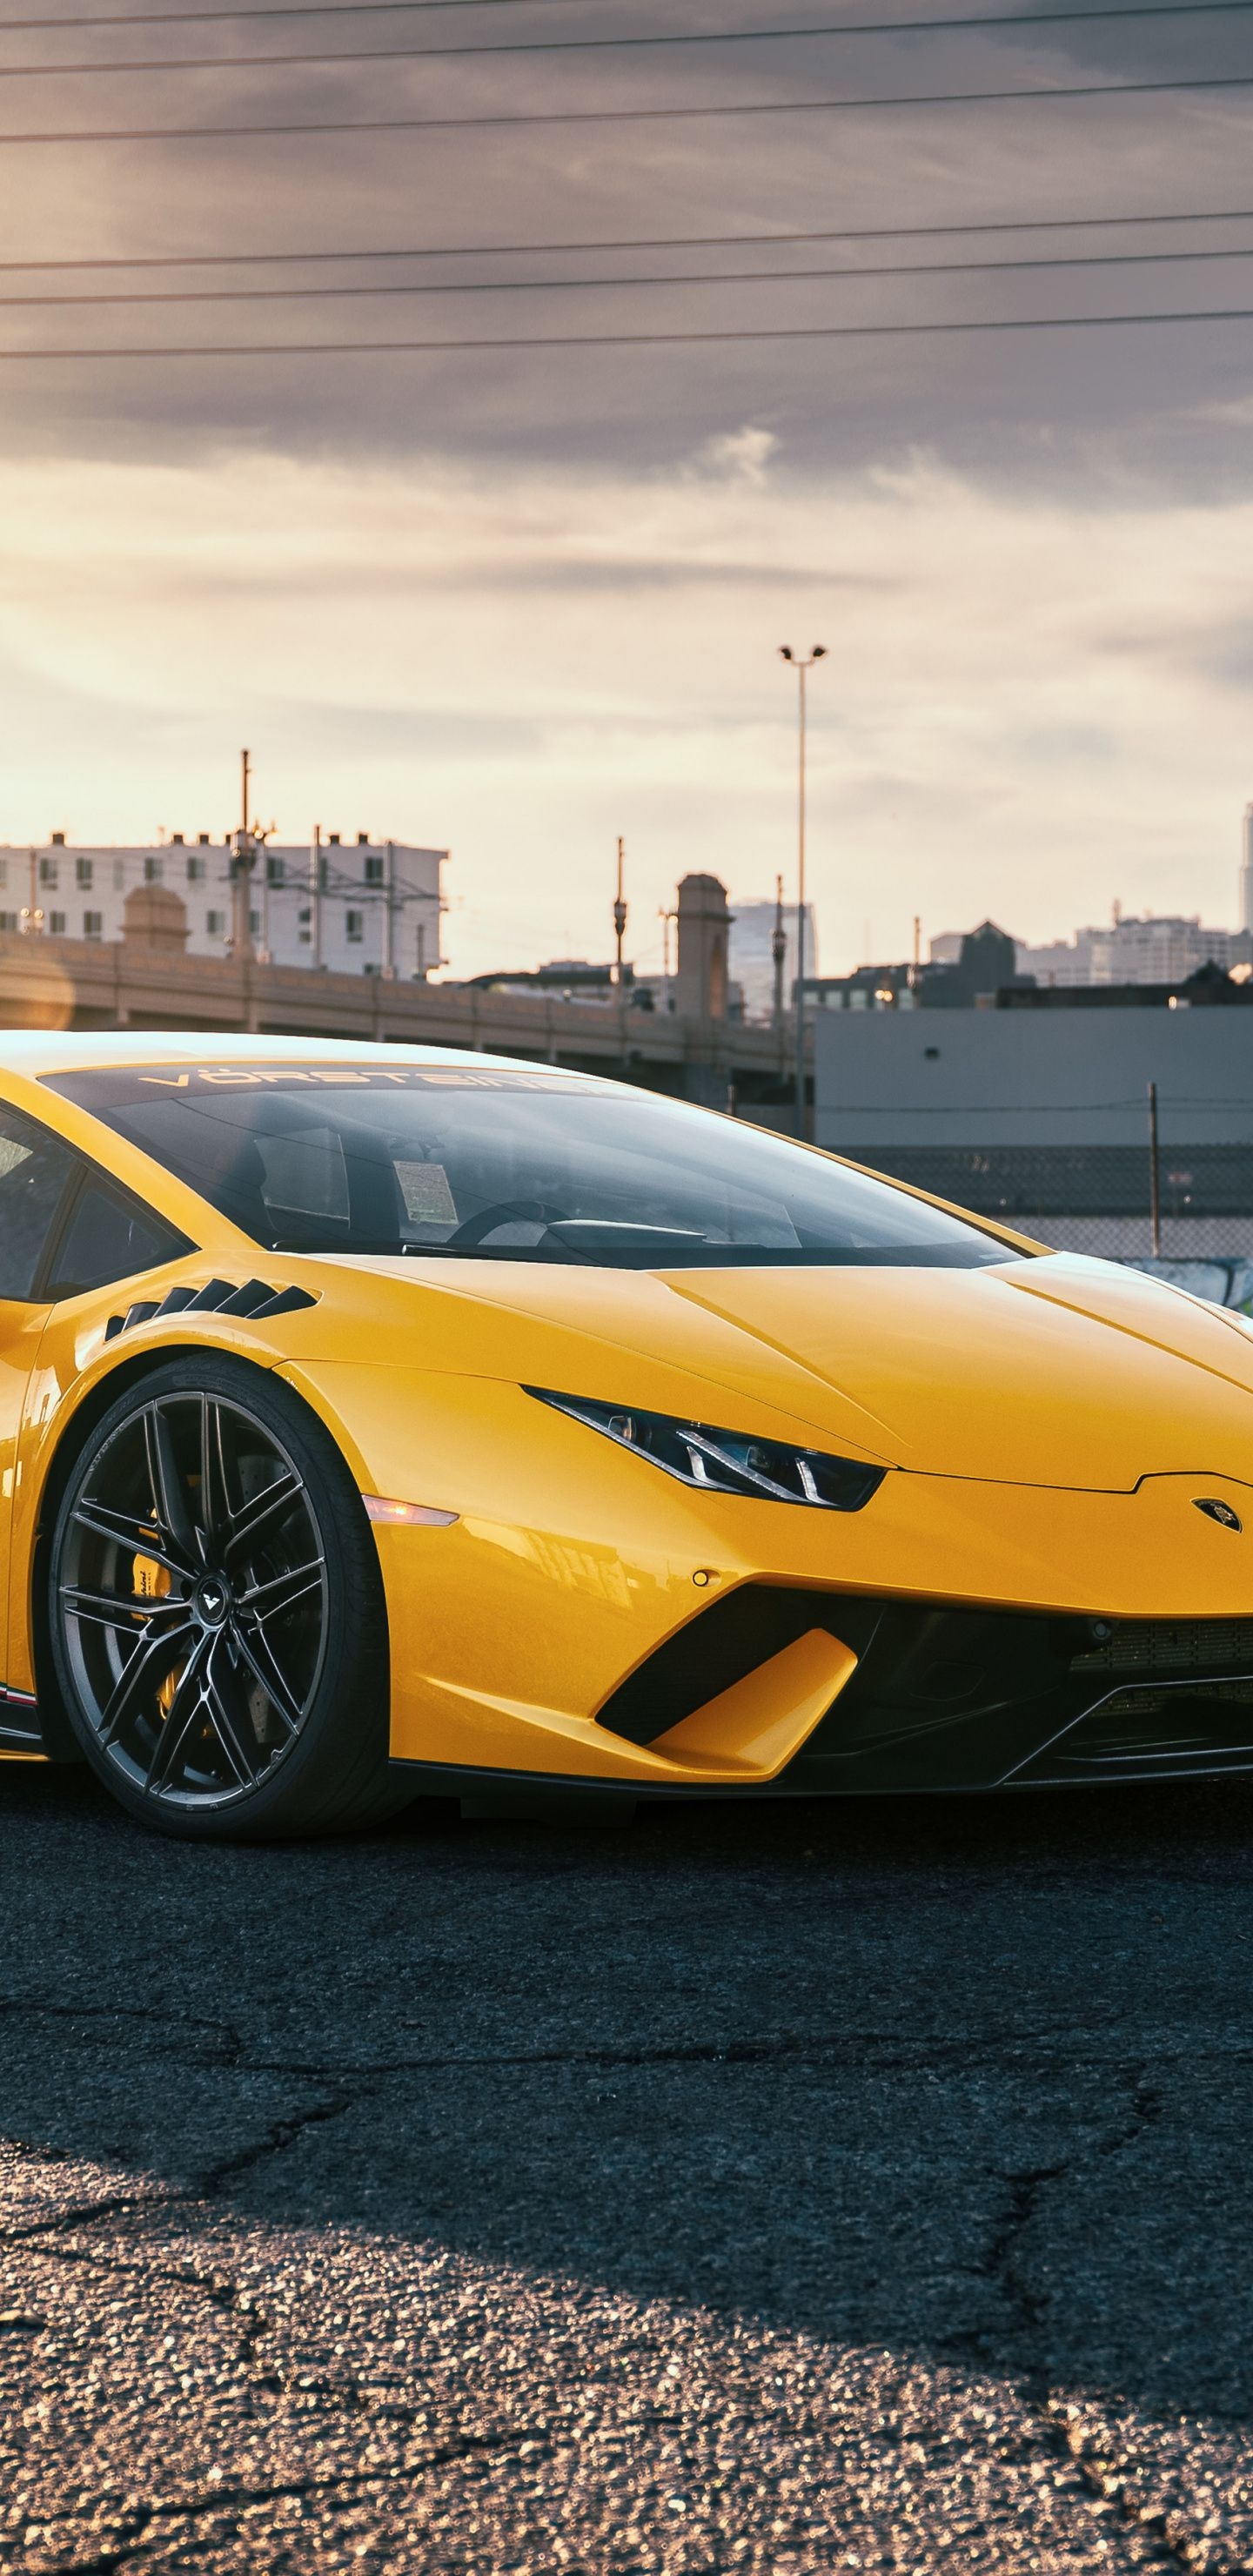 1440x2960 Lamborghini Huracan Yellow Sports Car Wallpaper Sports Car Wallpaper New Car Photo Lamborghini Huracan